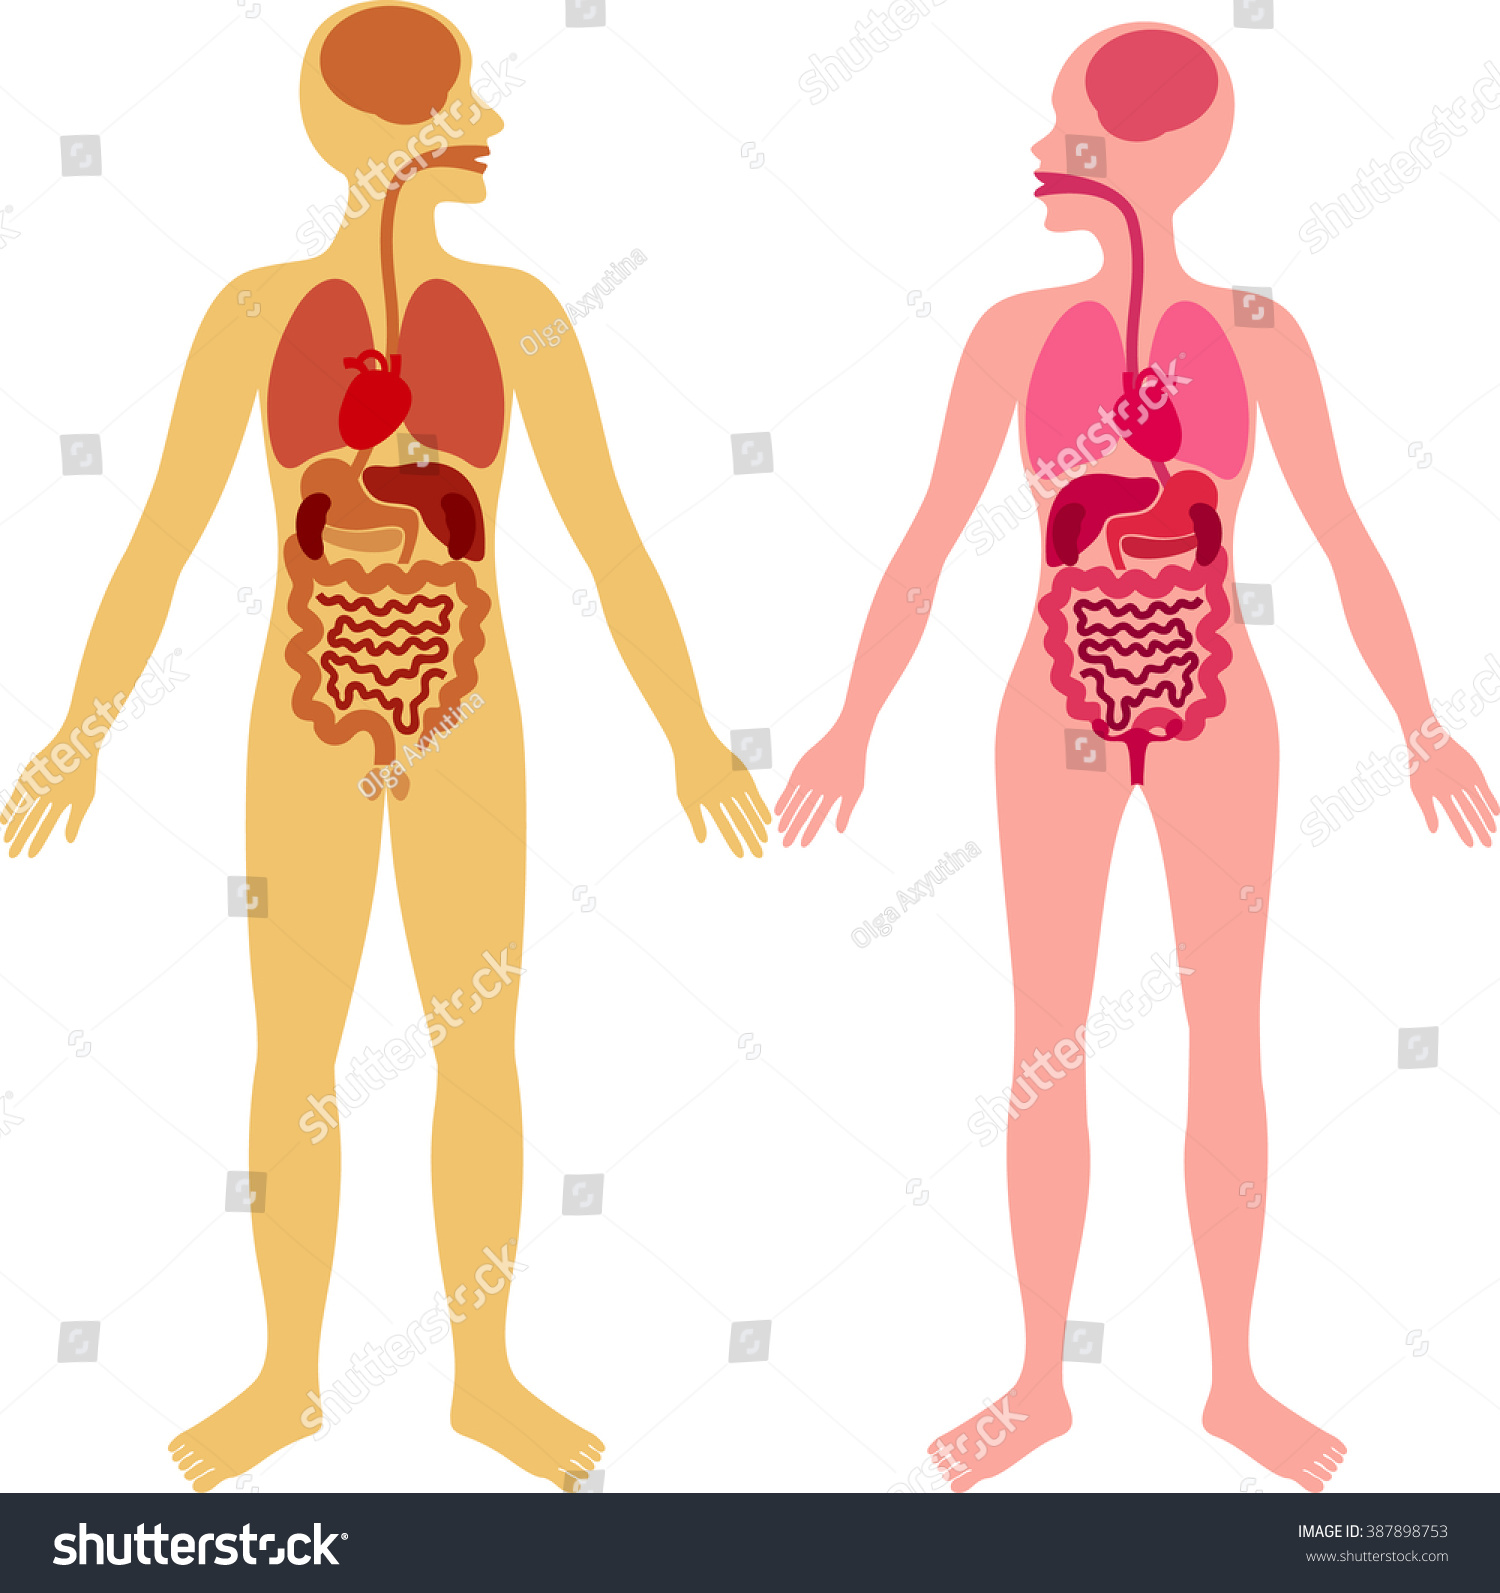 Man Woman Anatomy Stock Vector Royalty Free 387898753 Shutterstock